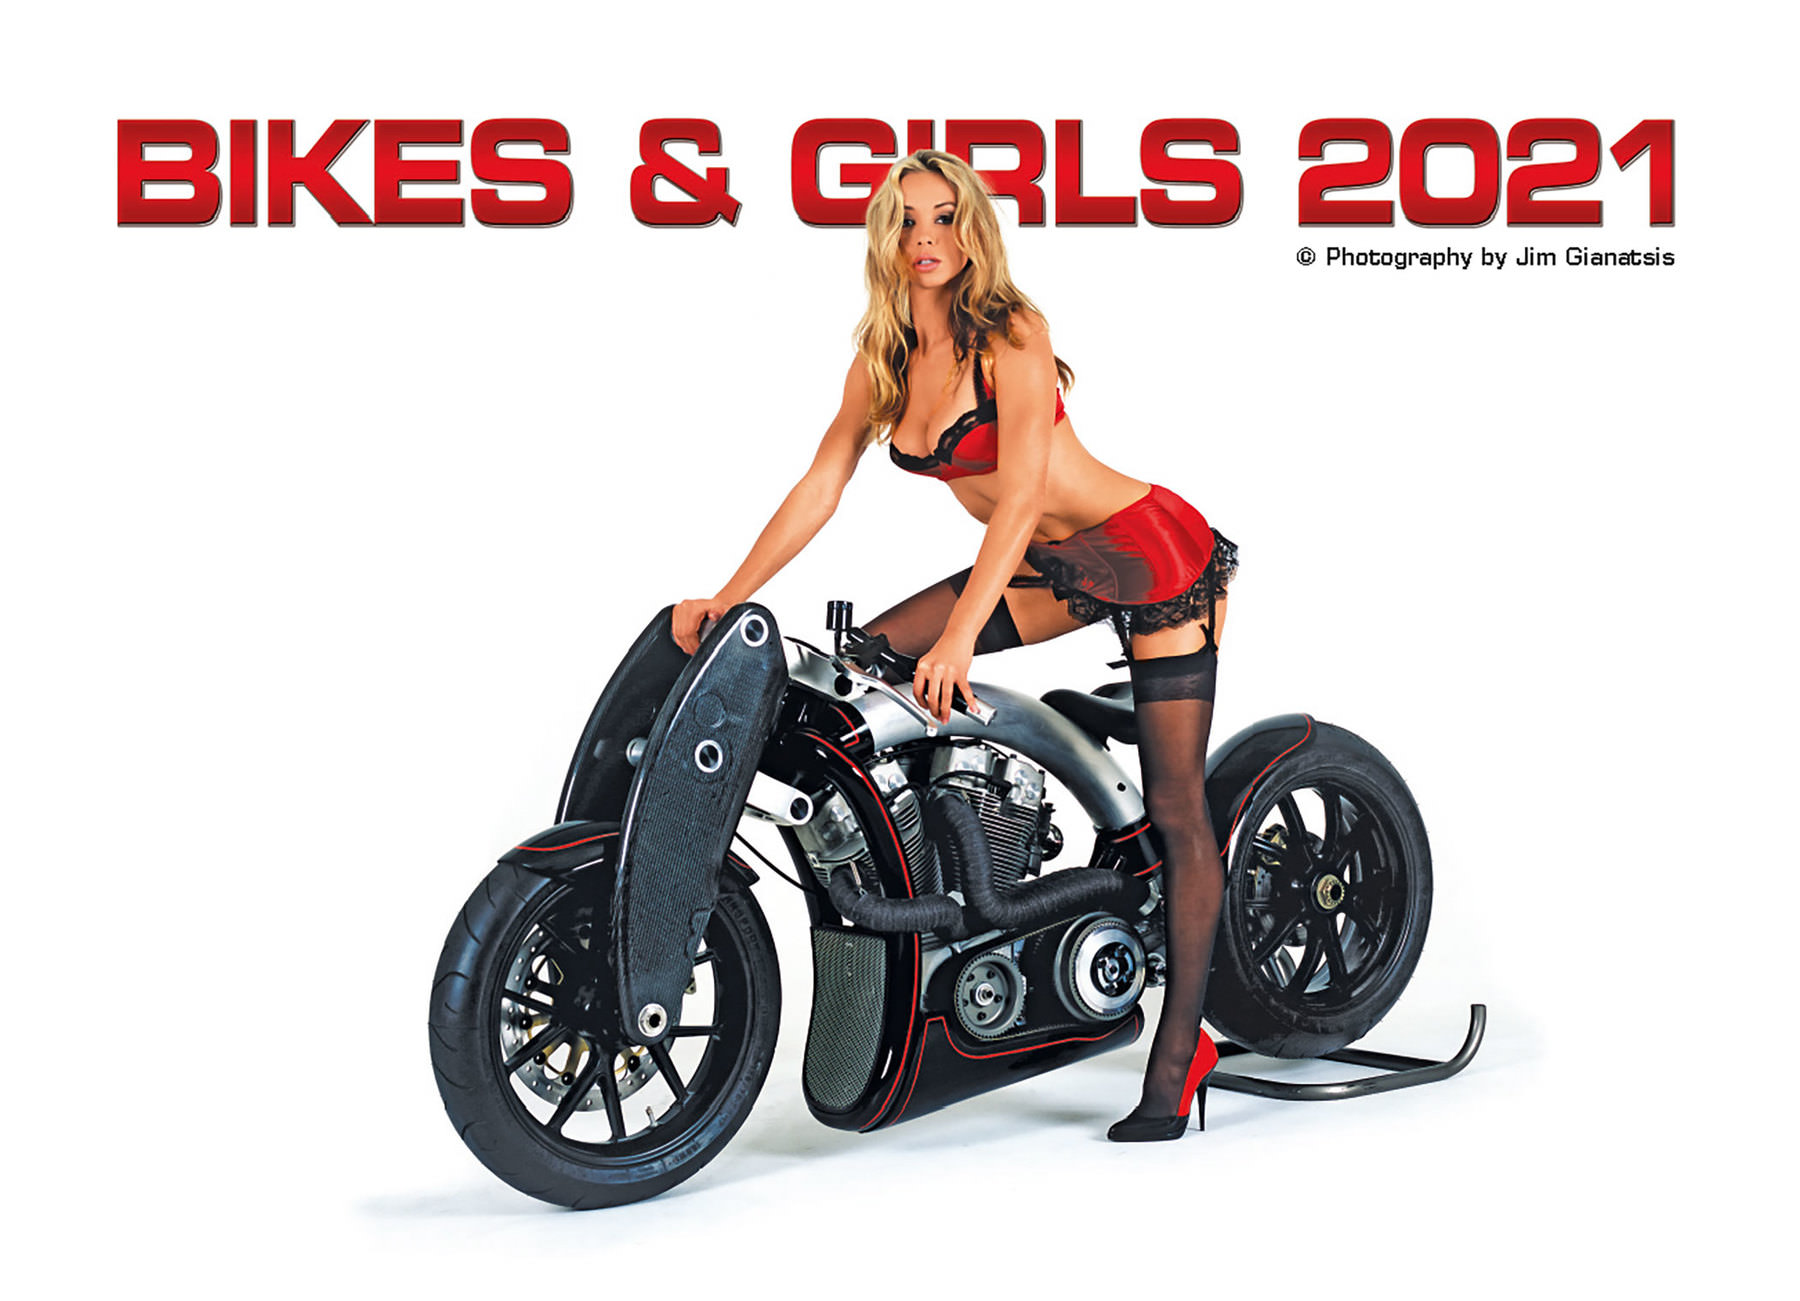 Buy Bikes and Girls Calendar 2021 | Louis motorcycle clothing and